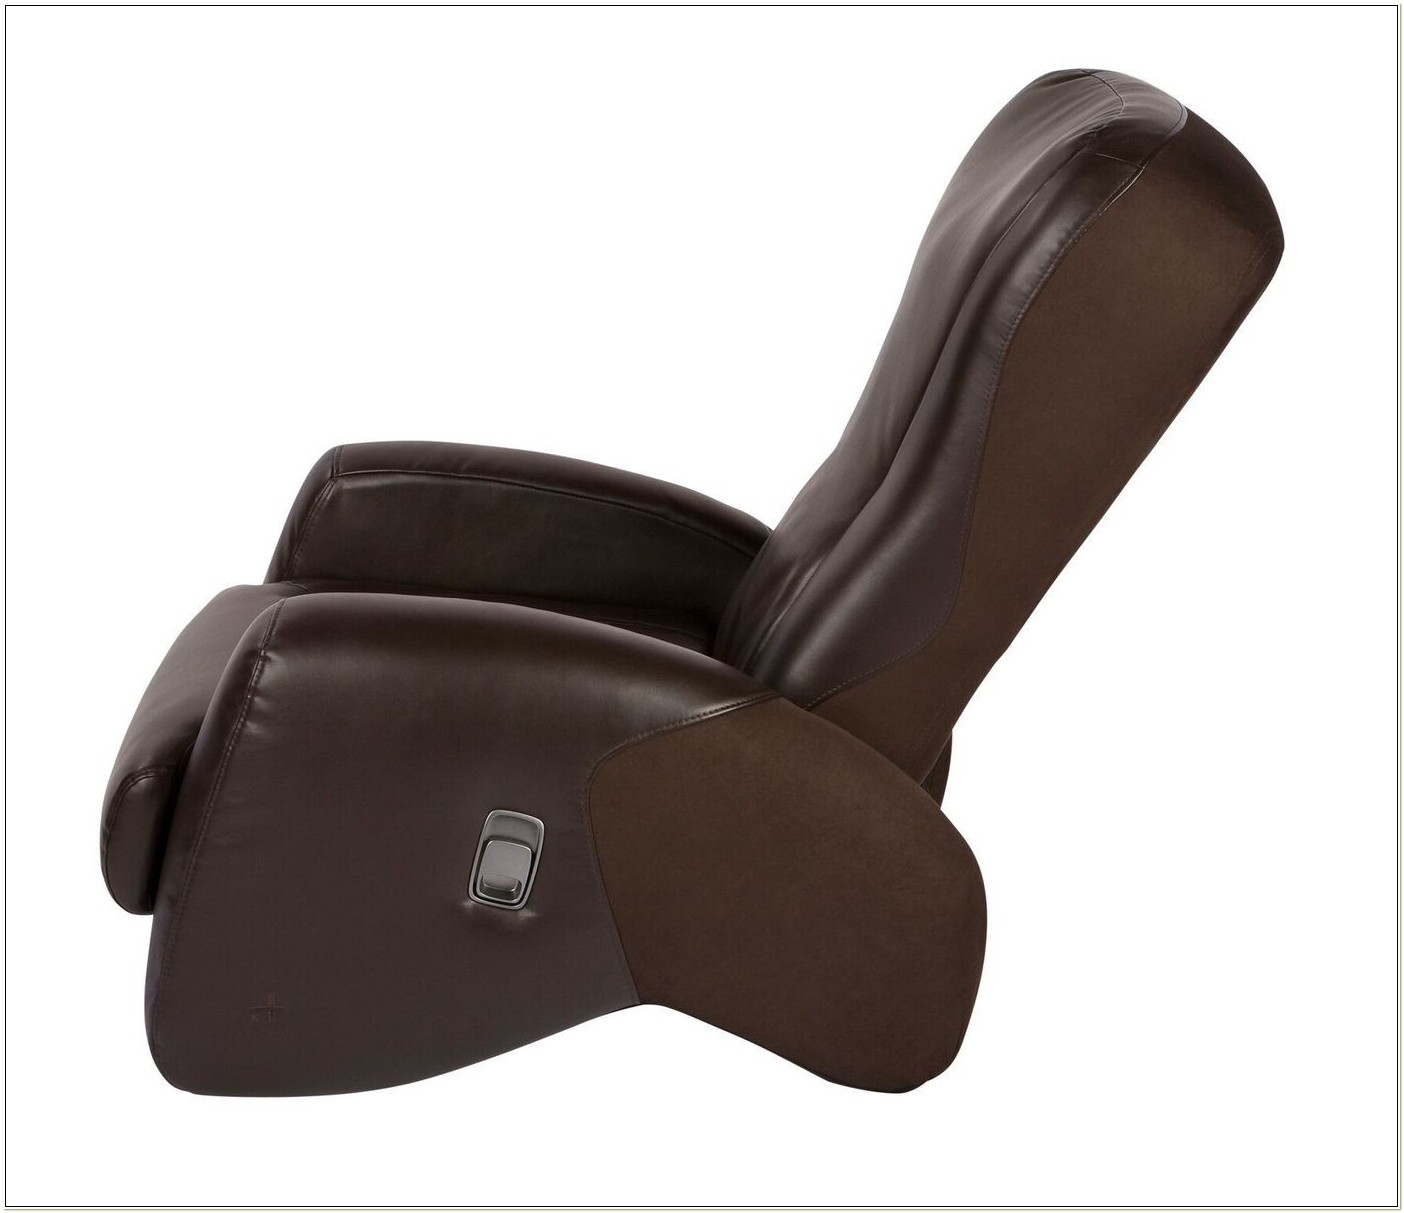 Ijoy 2310 Casual Massage Chair